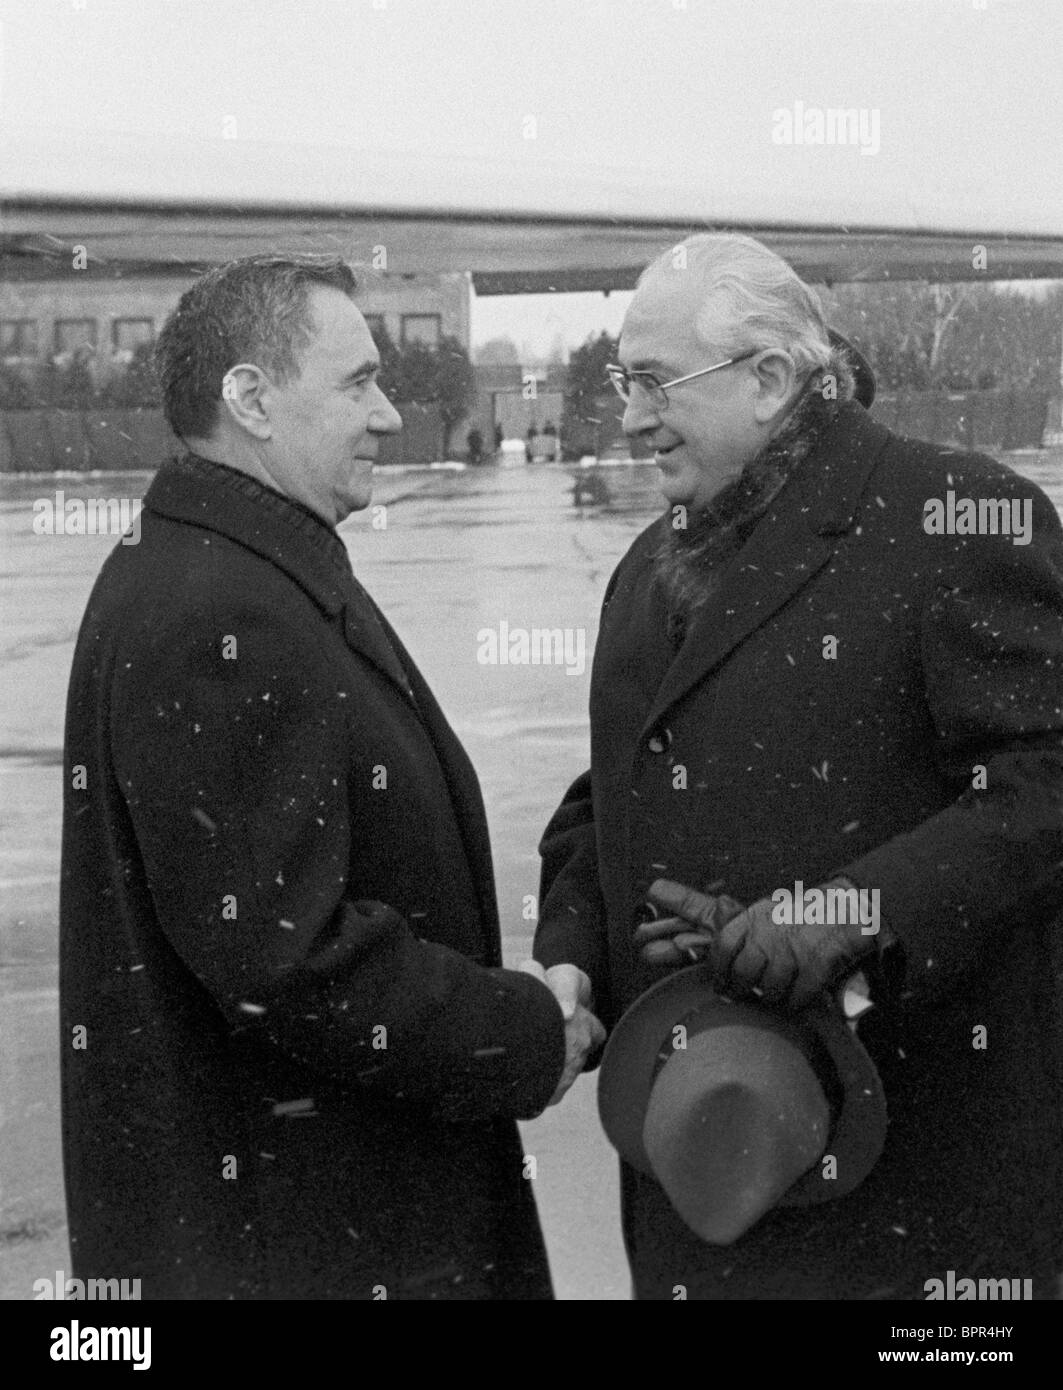 Andrei Gromyko and Yuri Andropov in airport, 1979 - Stock Image